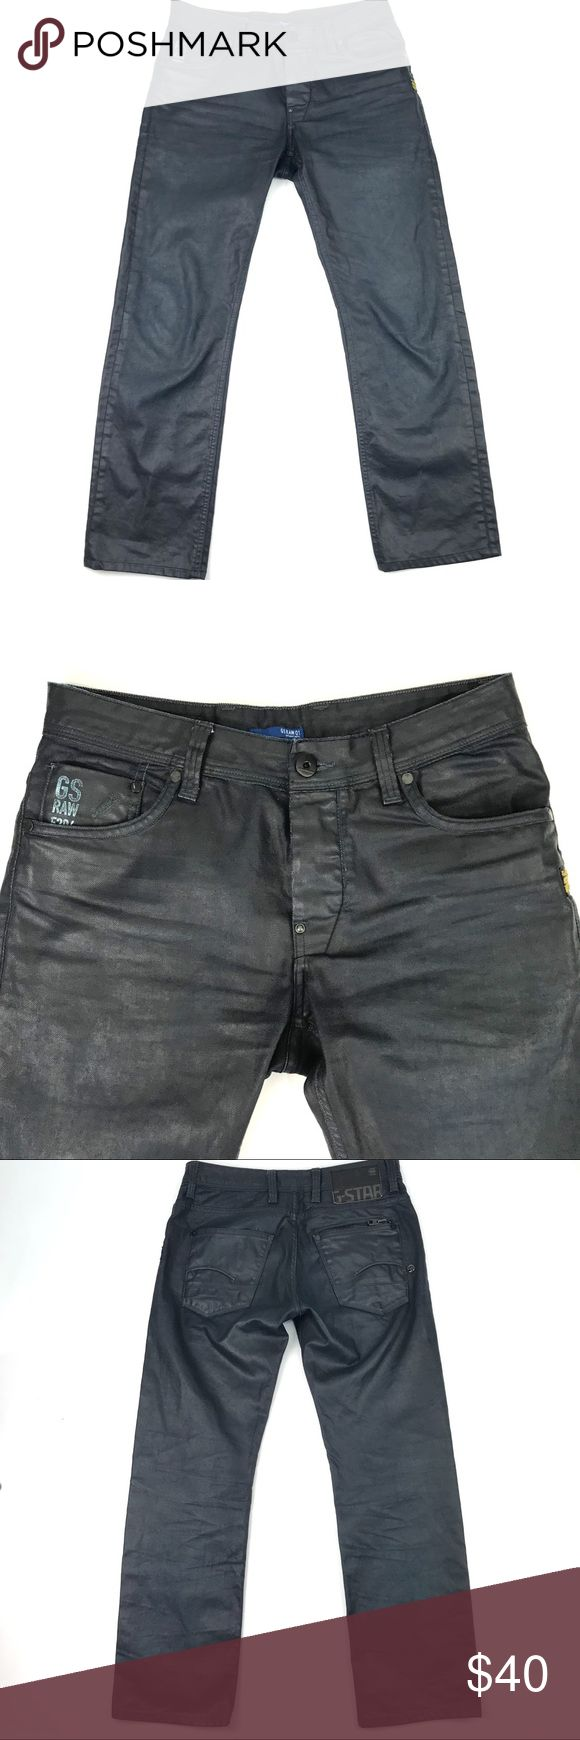 """G Star Raw Dark Coated Jeans Attacc Low Straight G Star Raw Dark Coated Jeans Mens 31 Attacc Low Straight 31x29 (hemmed)    Condition: Pre-owned Gently Worn No Stains No Holes Hemmed to a 29"""" Inseam (Tag is marked 31x34)    Measurements taken while garment was laying flat: These measurements were personally taken and are approximate:  Waist inches- 16 Rise inches- 9.5 Inseam inches- 29 Leg Opening inches- 8 G-Star Jeans Straight"""